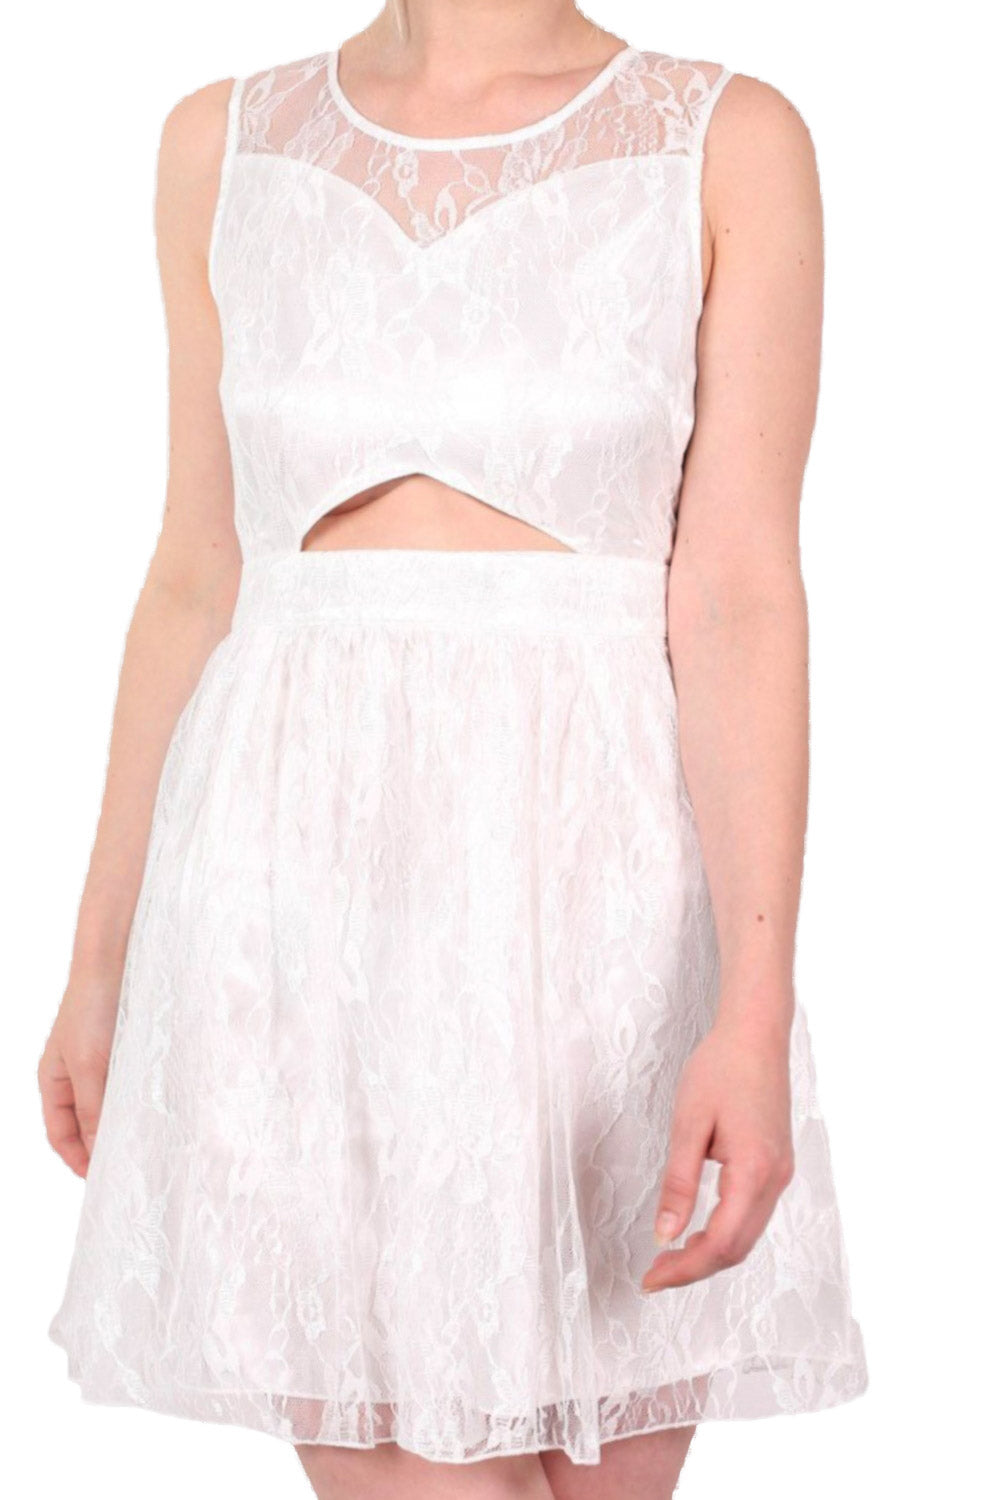 Lace Cut Out Front Skater Dress in White